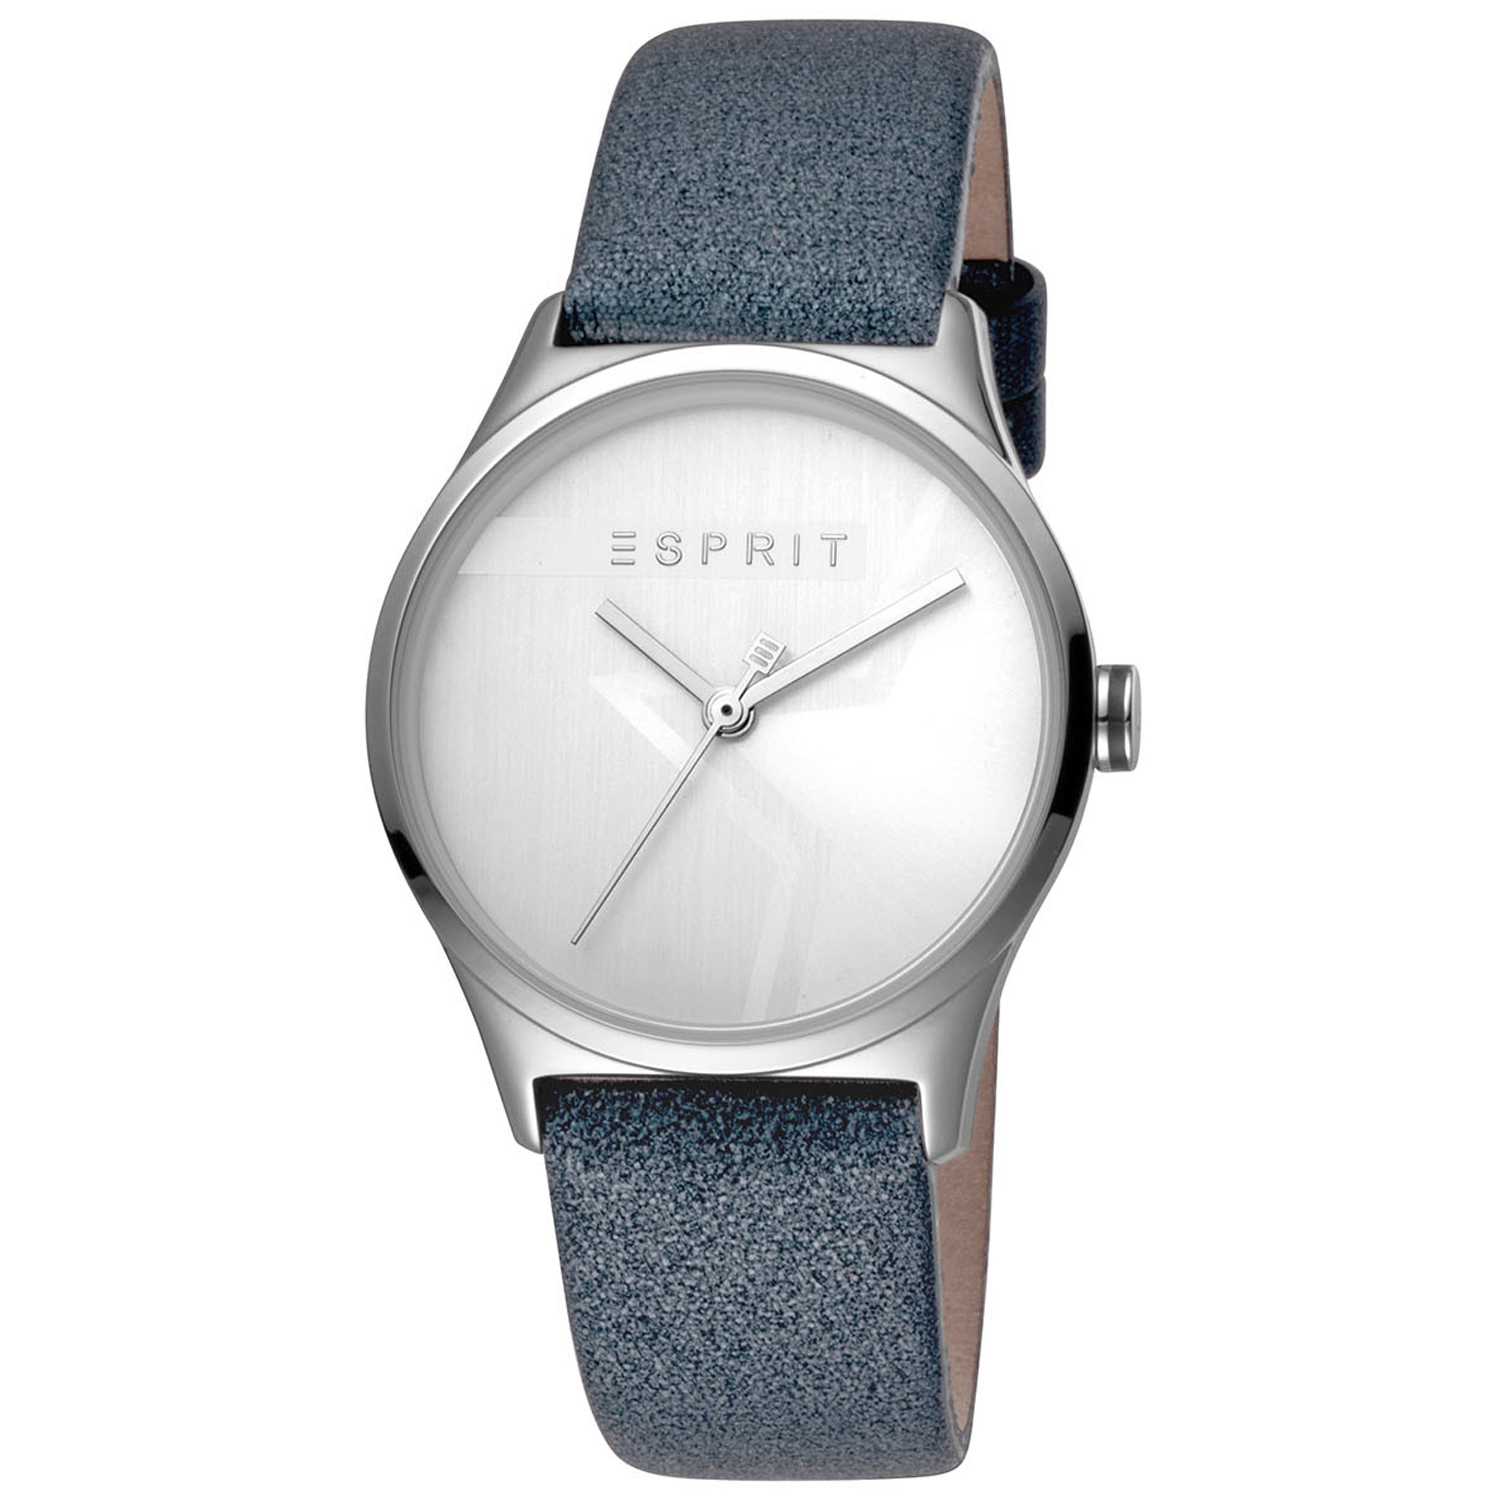 Esprit Watch ES1L034L0205 Silver